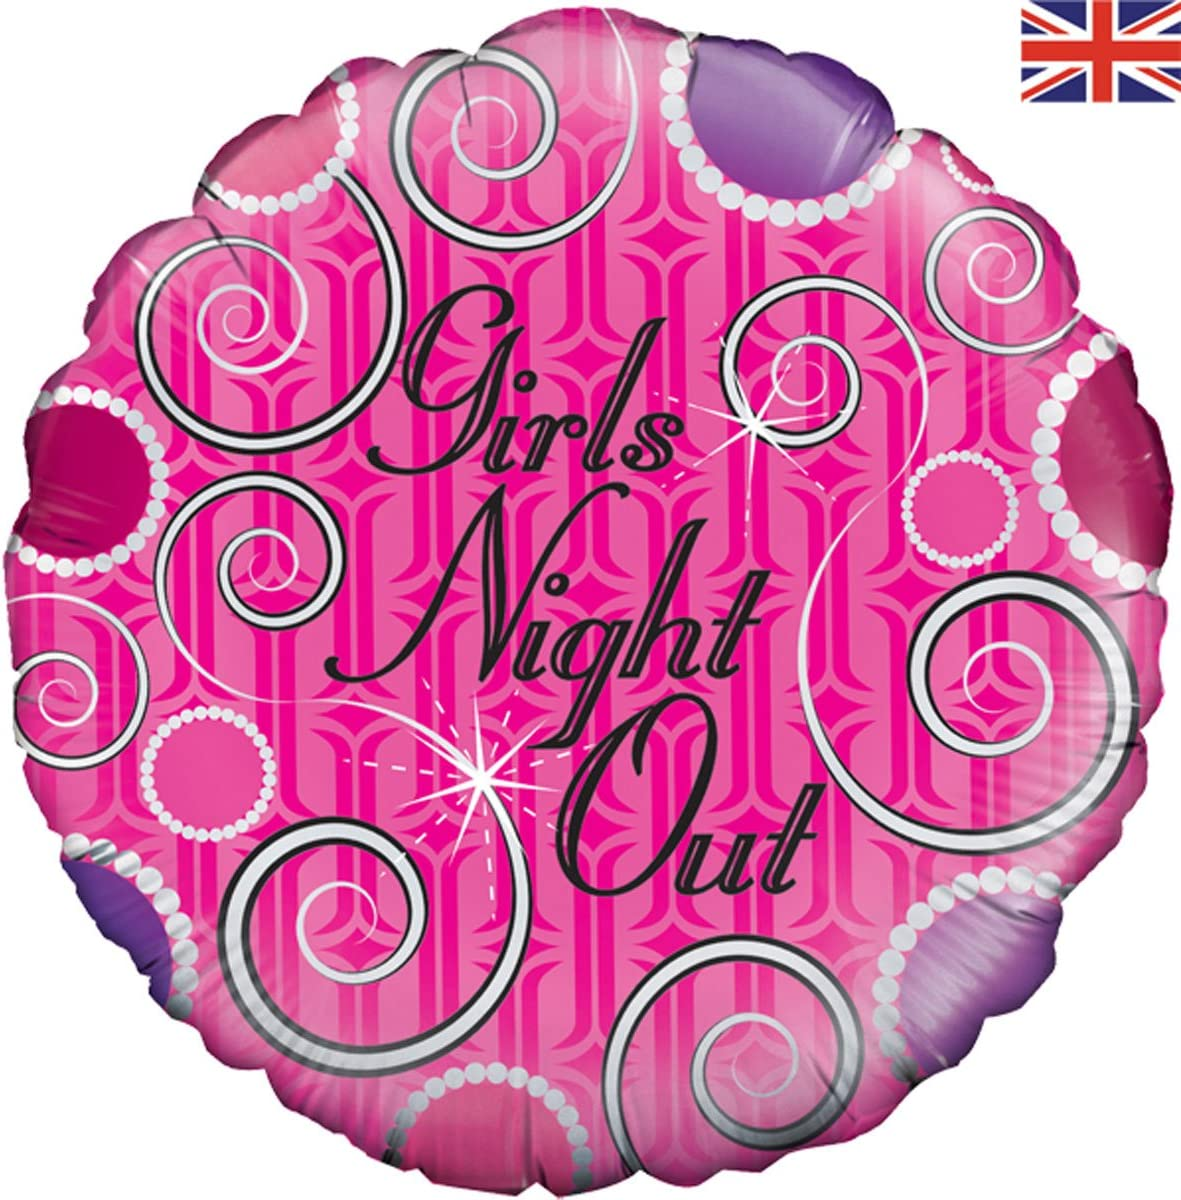 Hen Party Banner GCC Fashion Store Ladies Girls Hen Party Night out Fancy Dress Party Accessories